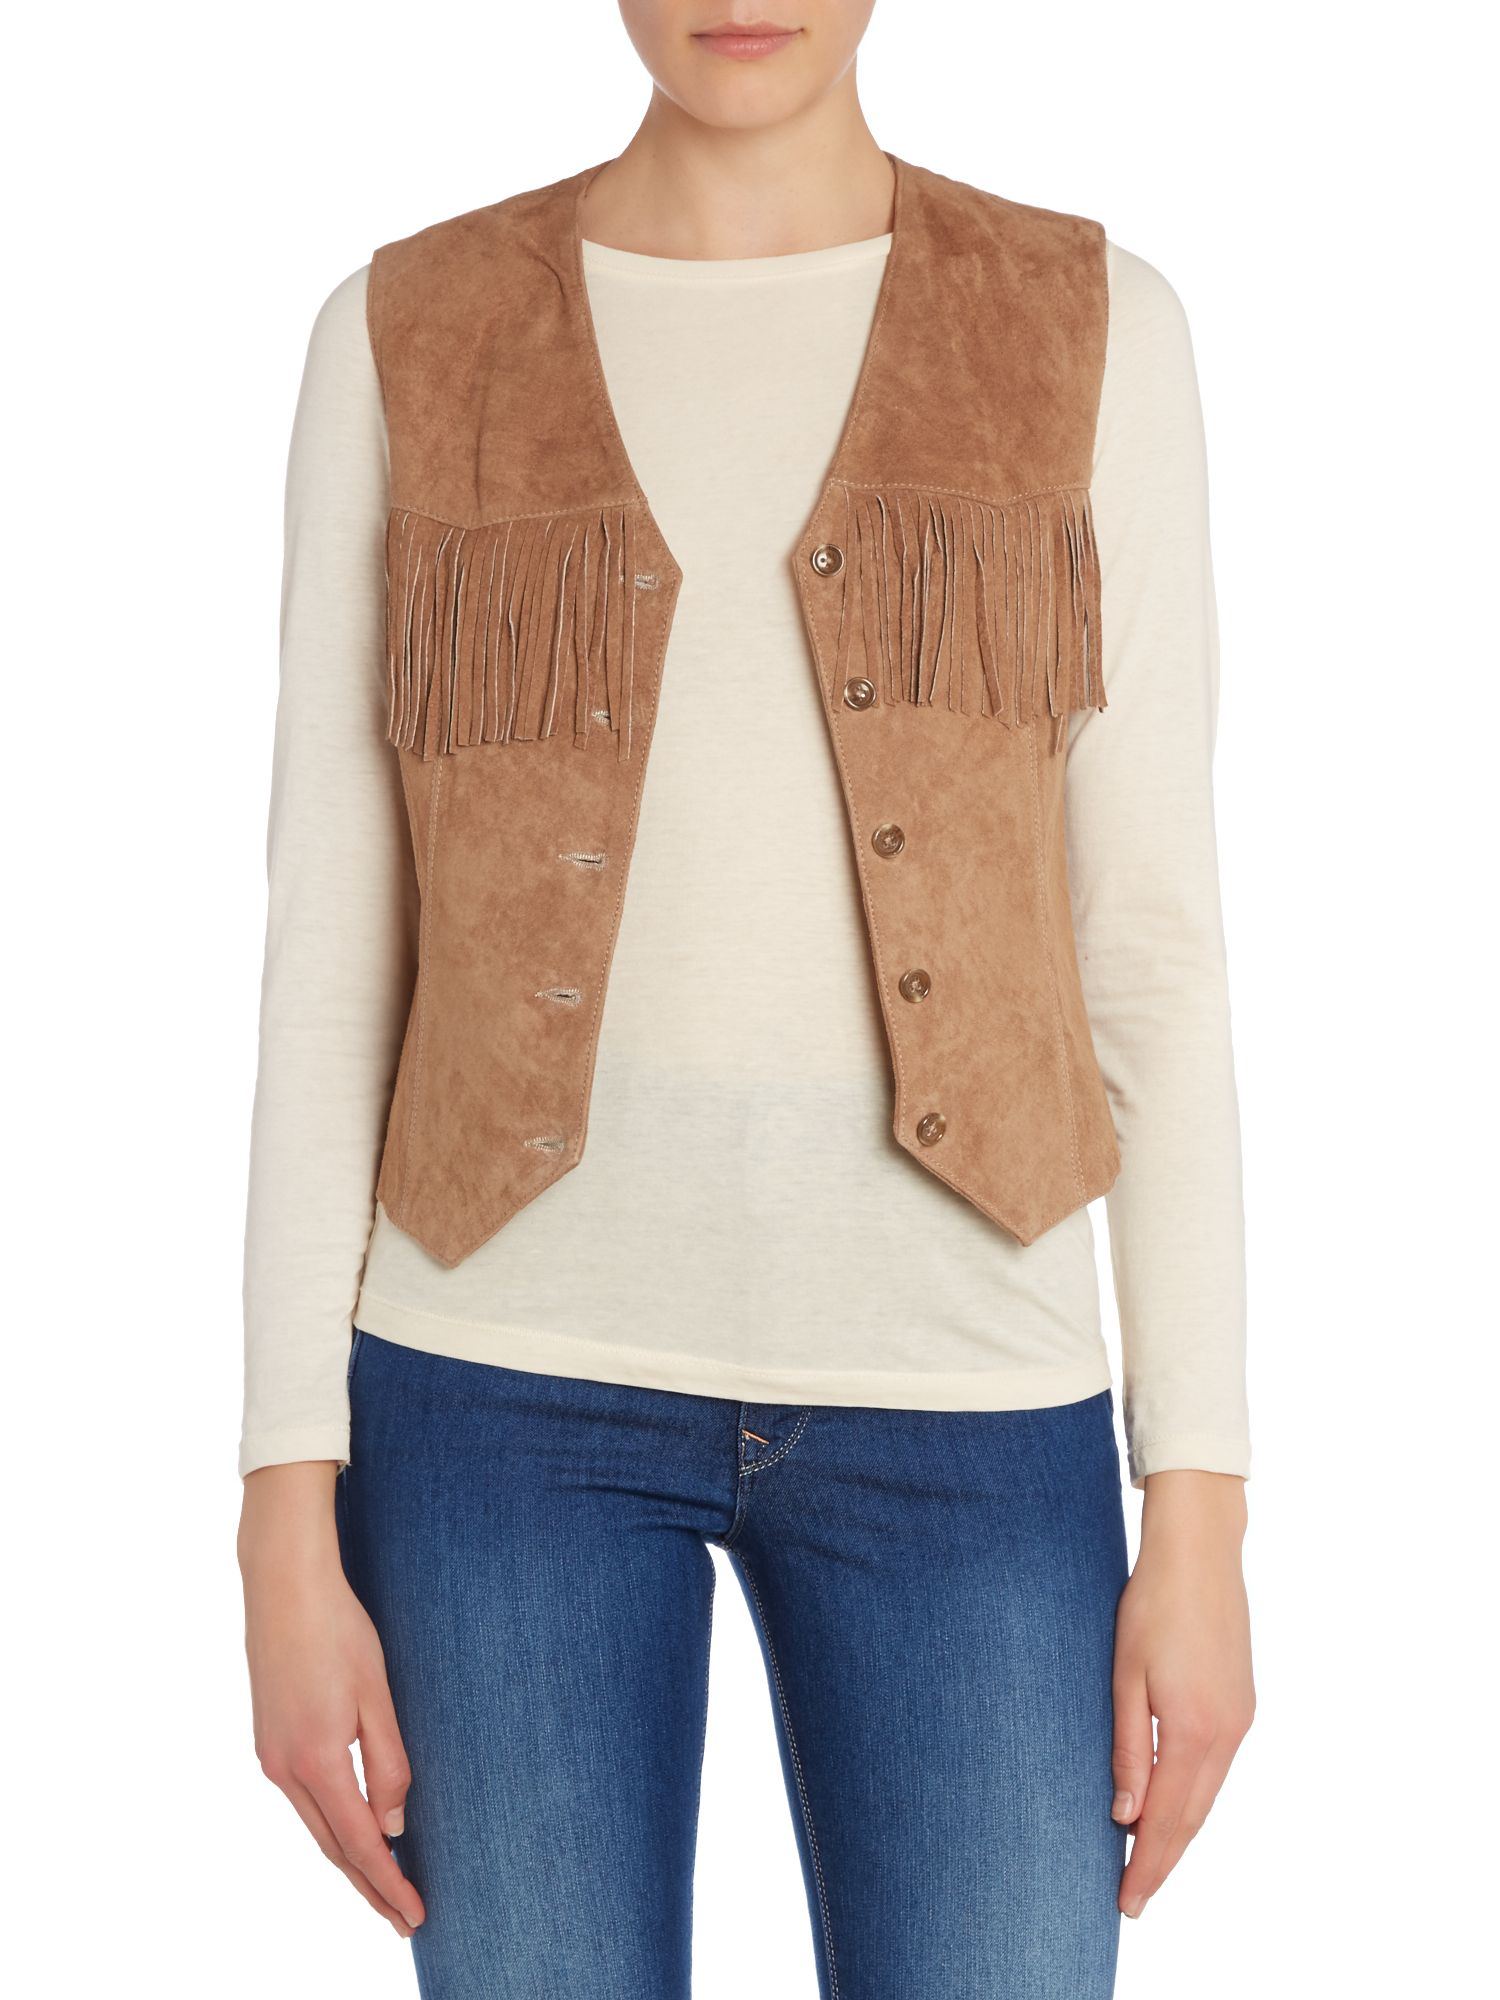 Sleeveless tassle front jacket